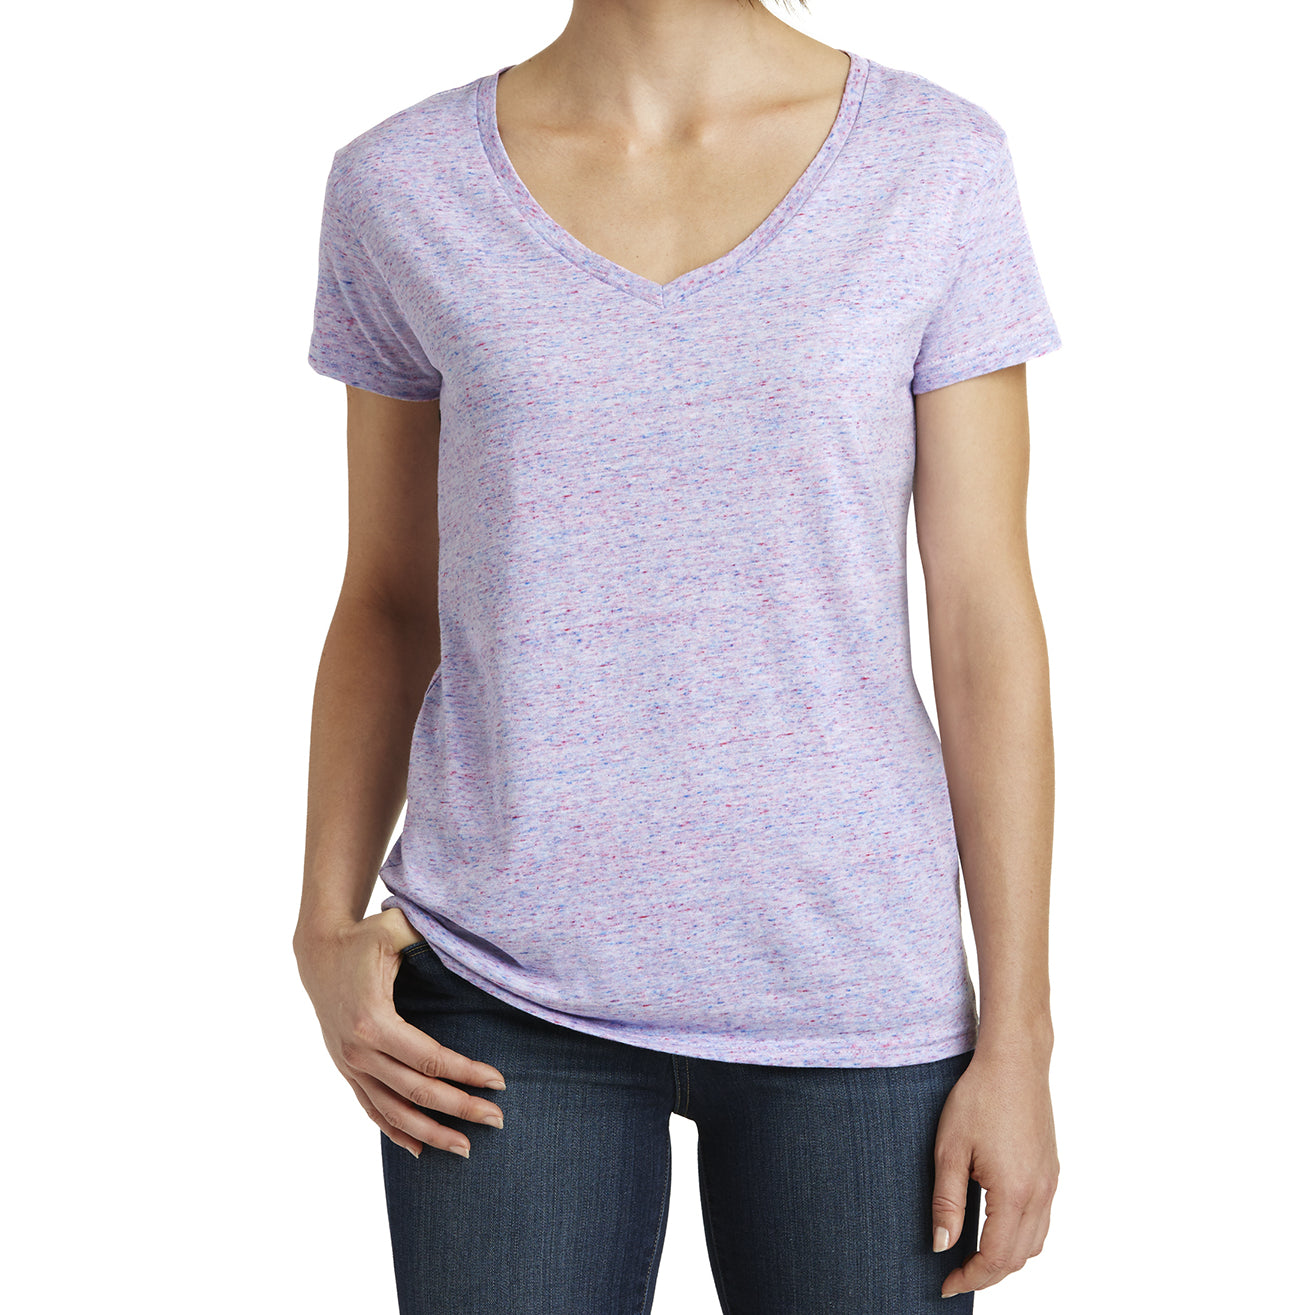 Womens Cosmic Relaxed V-Neck Tee - White/Pink Cosmic - Front